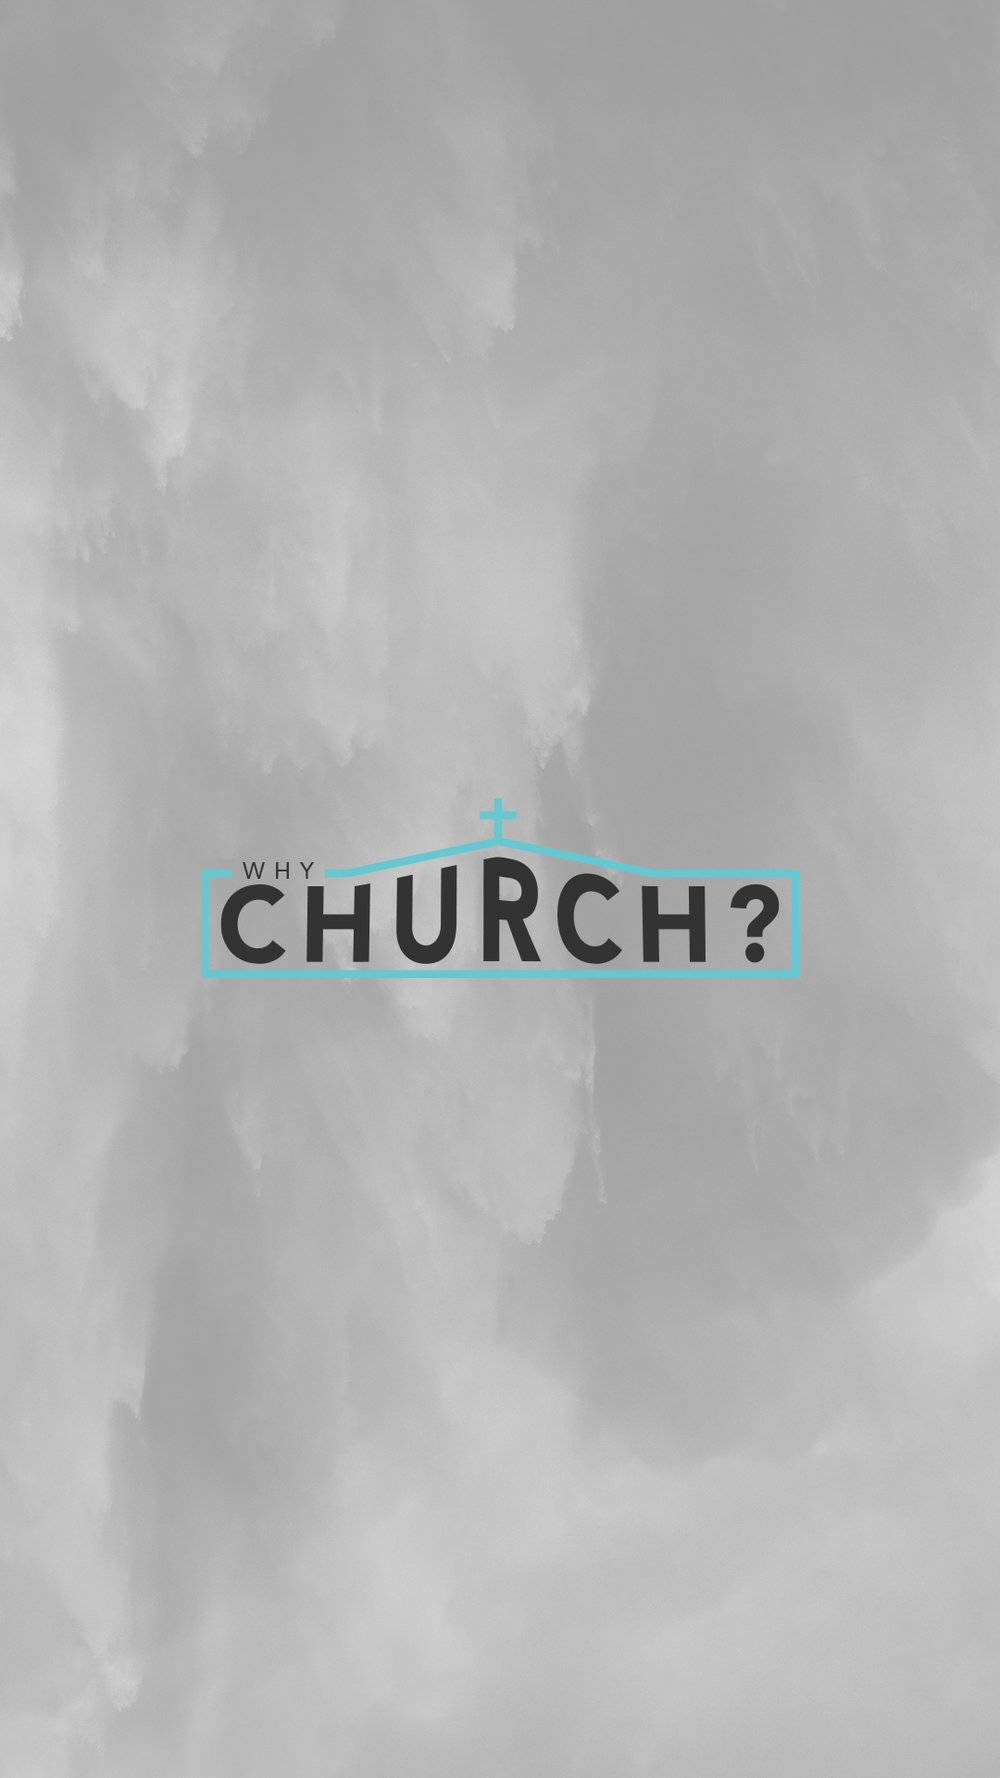 Why Church Instastory 2.jpg